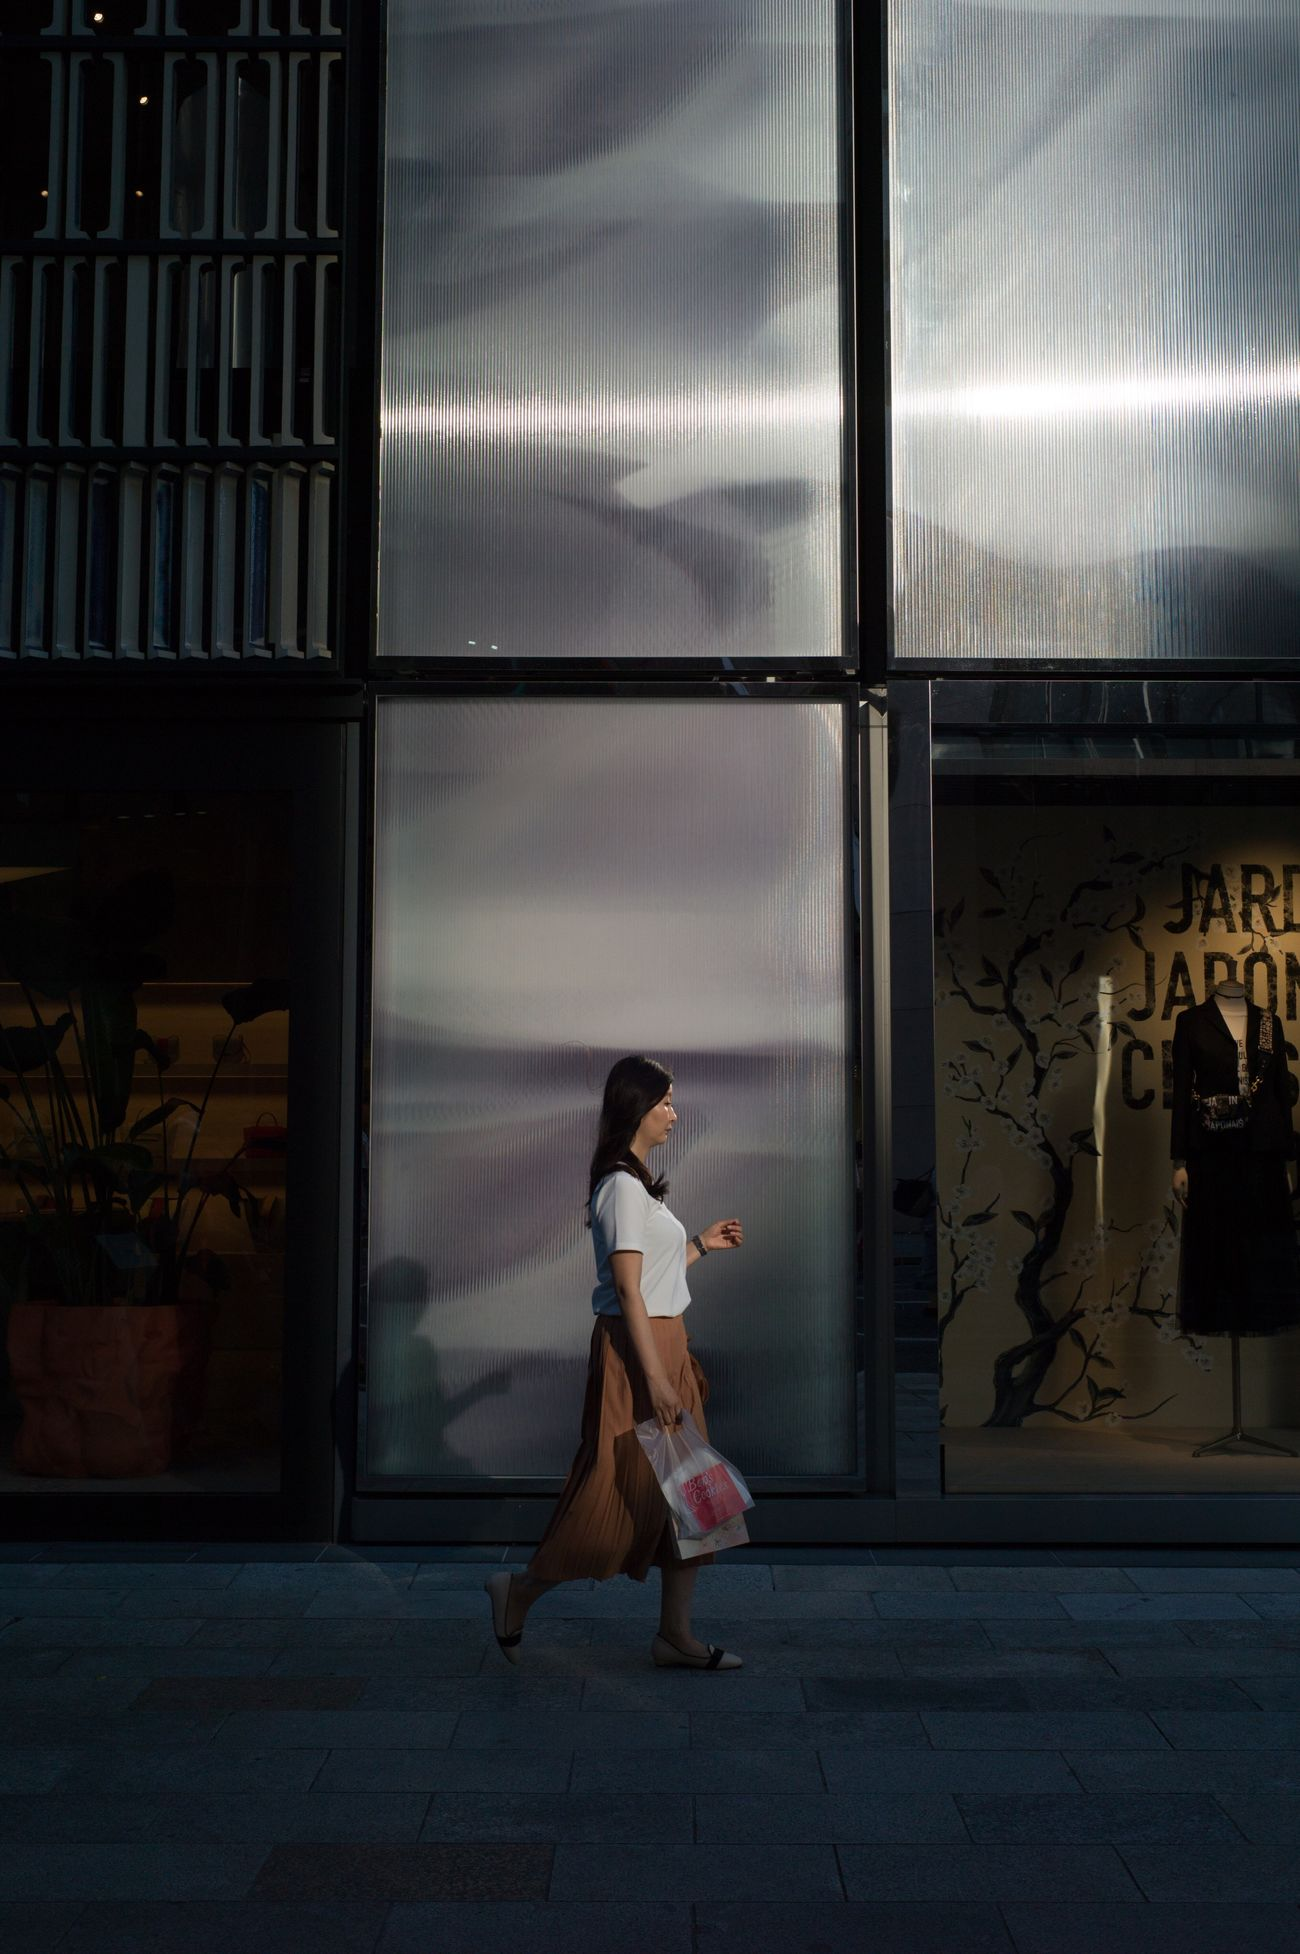 Streetphotography Colors Street Photography Tokyo Street Photography 35mm People Light And Shadow Women Capture The Moment EyeEm Best Shots Leicacamera The Street Photographer - 2017 EyeEm Awards